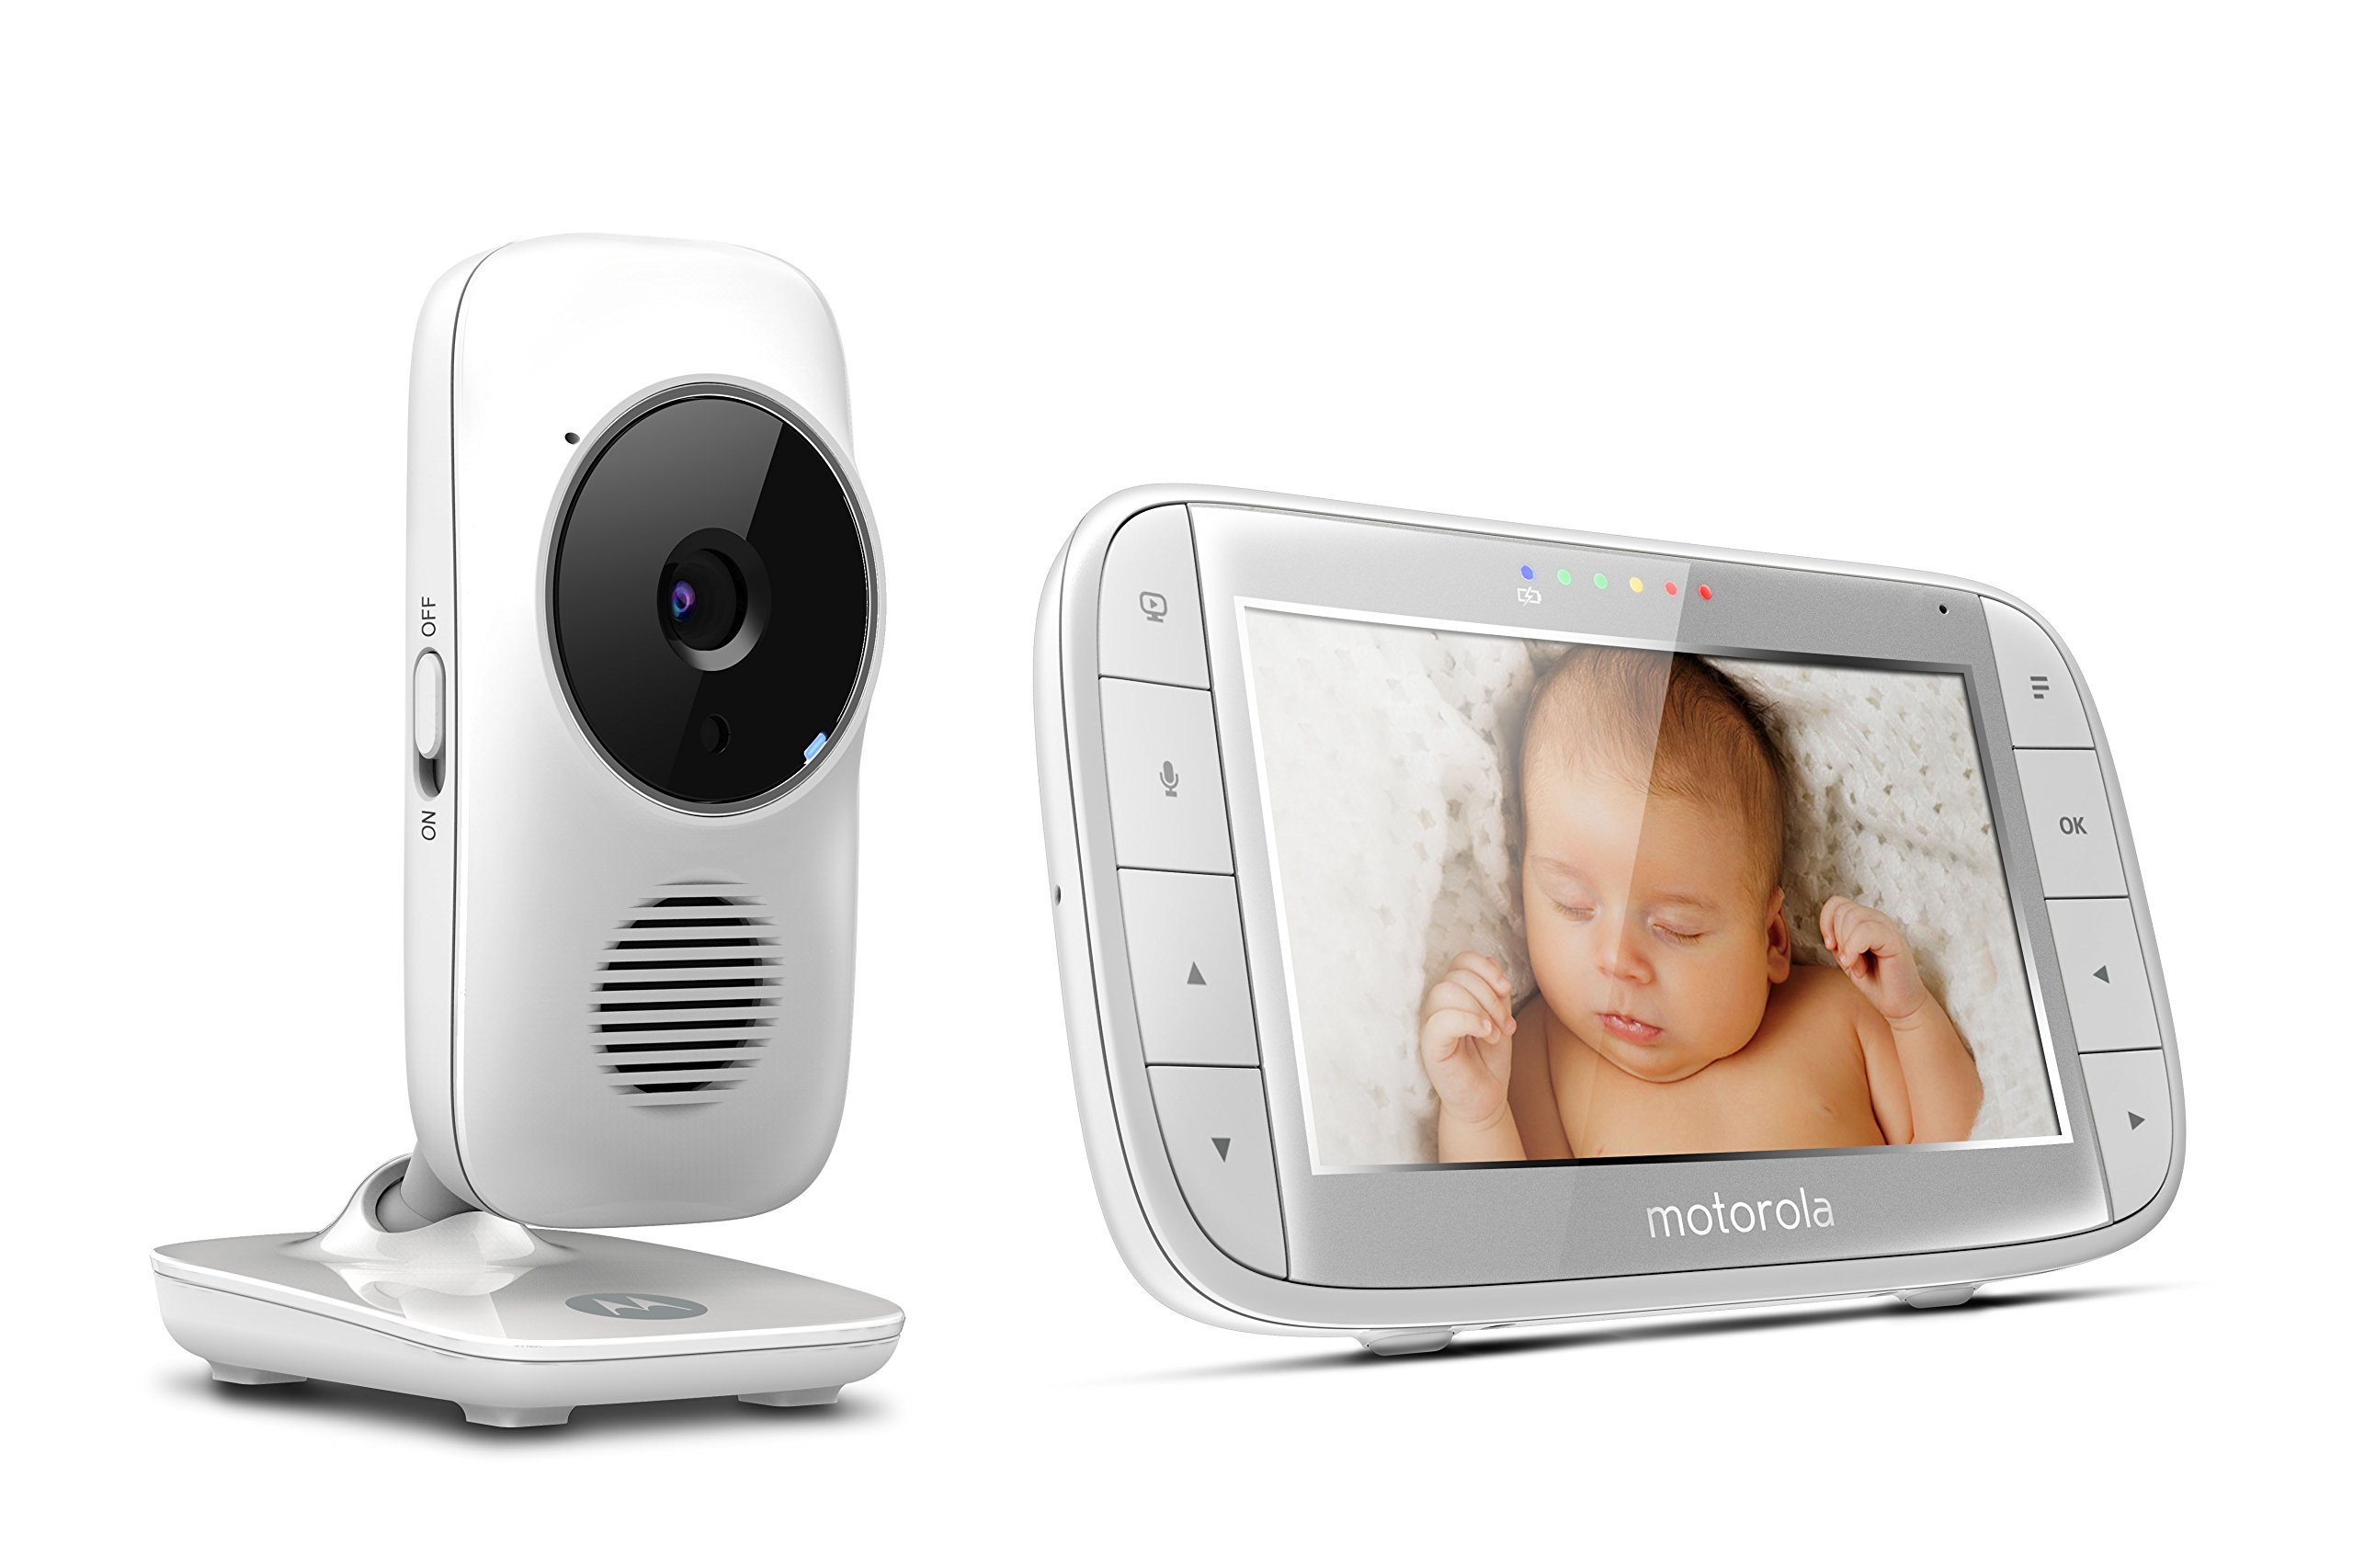 "Motorola MBP48 5 inch Video Baby Monitor Motorola Baby 5"" color display two-way communication Infrared night vision Room temperature monitoring 3"